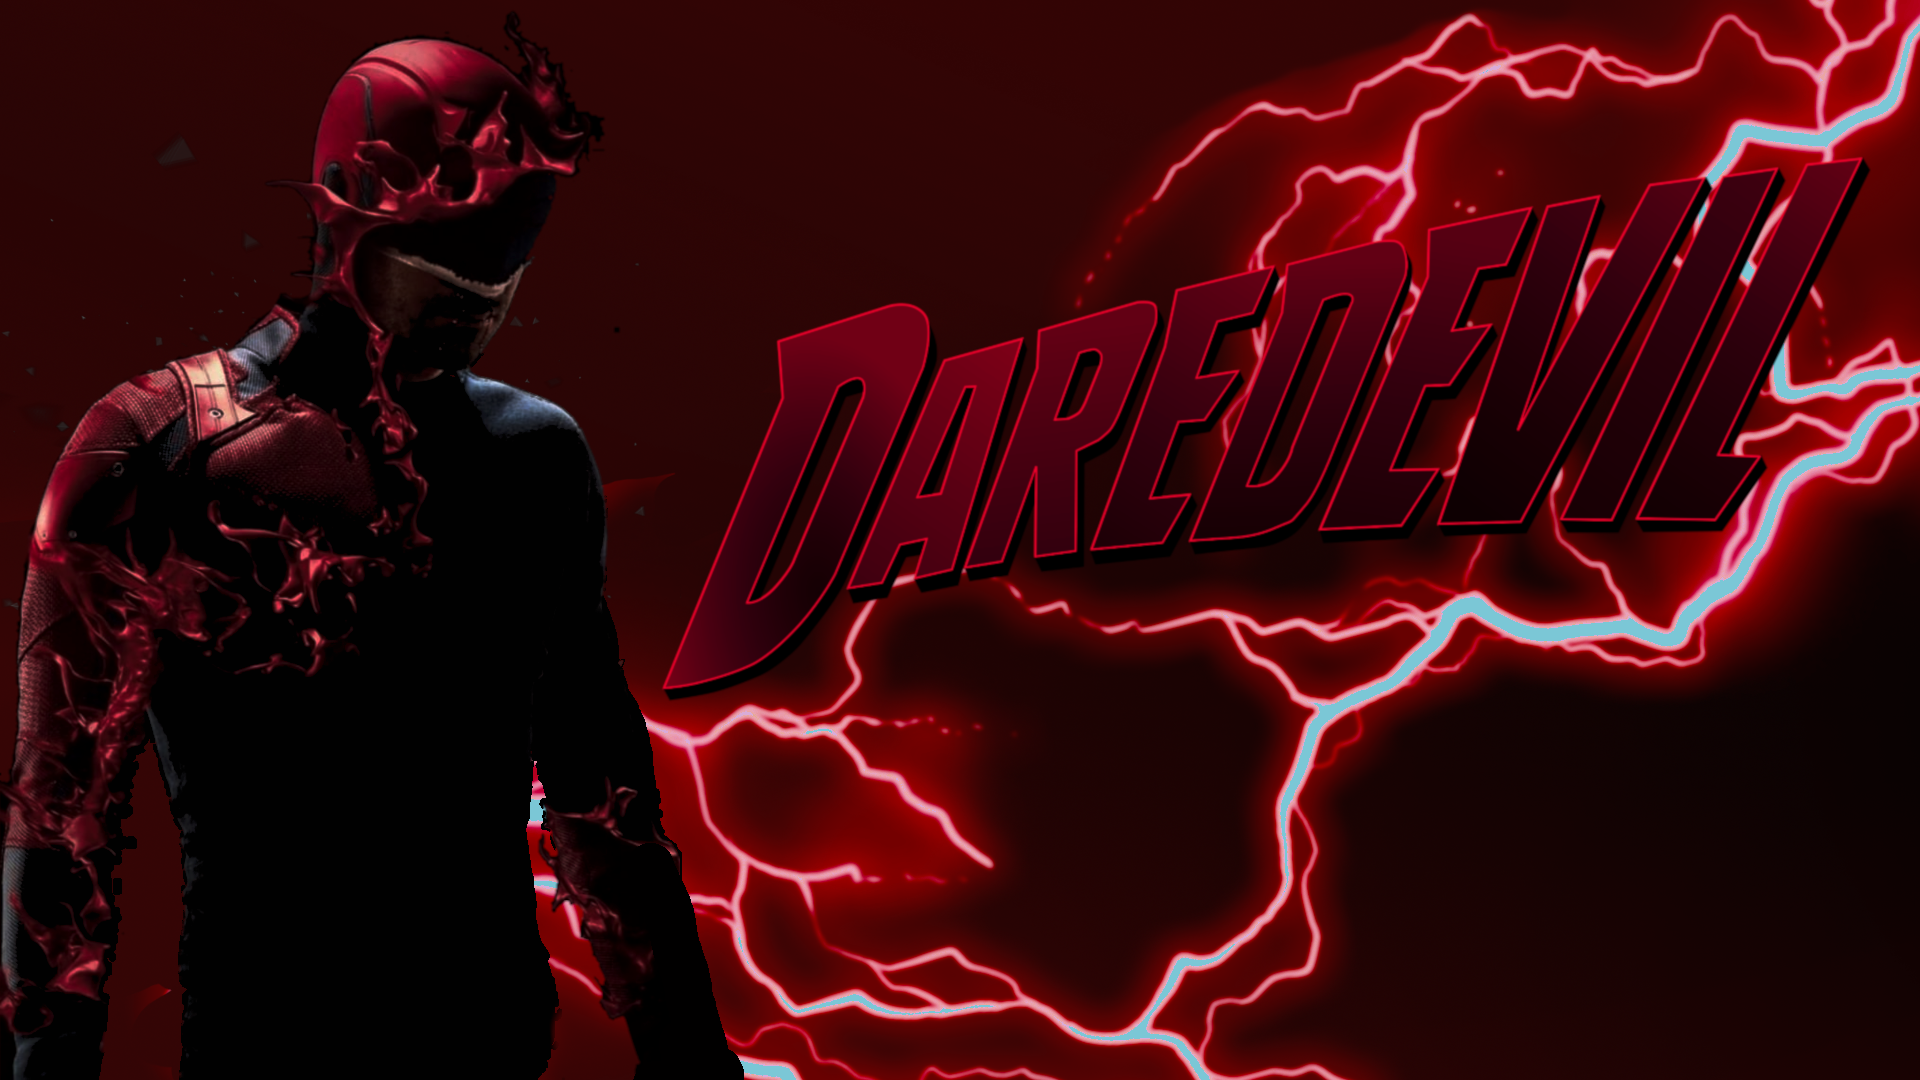 Daredevil images Daredevil Wallpaper HD wallpaper and background photos